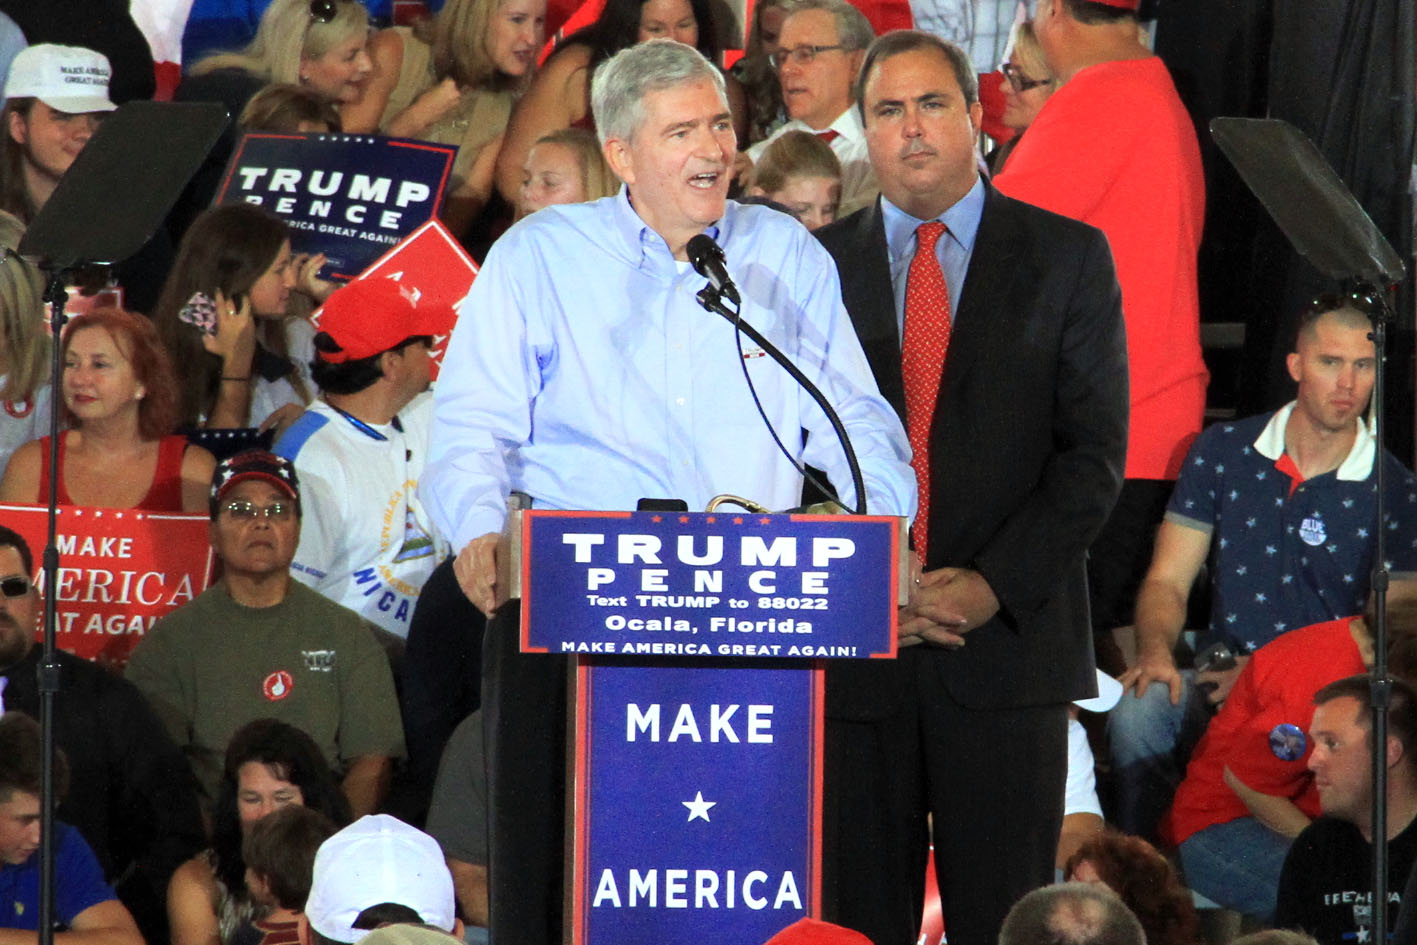 """US Representative Daniel Webster addresses Trump's supporters during his rally Wednesday afternoon. Even after Trump lost the endorsement of numerous high-profile Republicans, including senators, representatives, and governors, over the past week, Webster has continued to support Trump's candidacy. """"I may be in congress, but I'm supporting Donald Trump for president,"""" Webster said."""